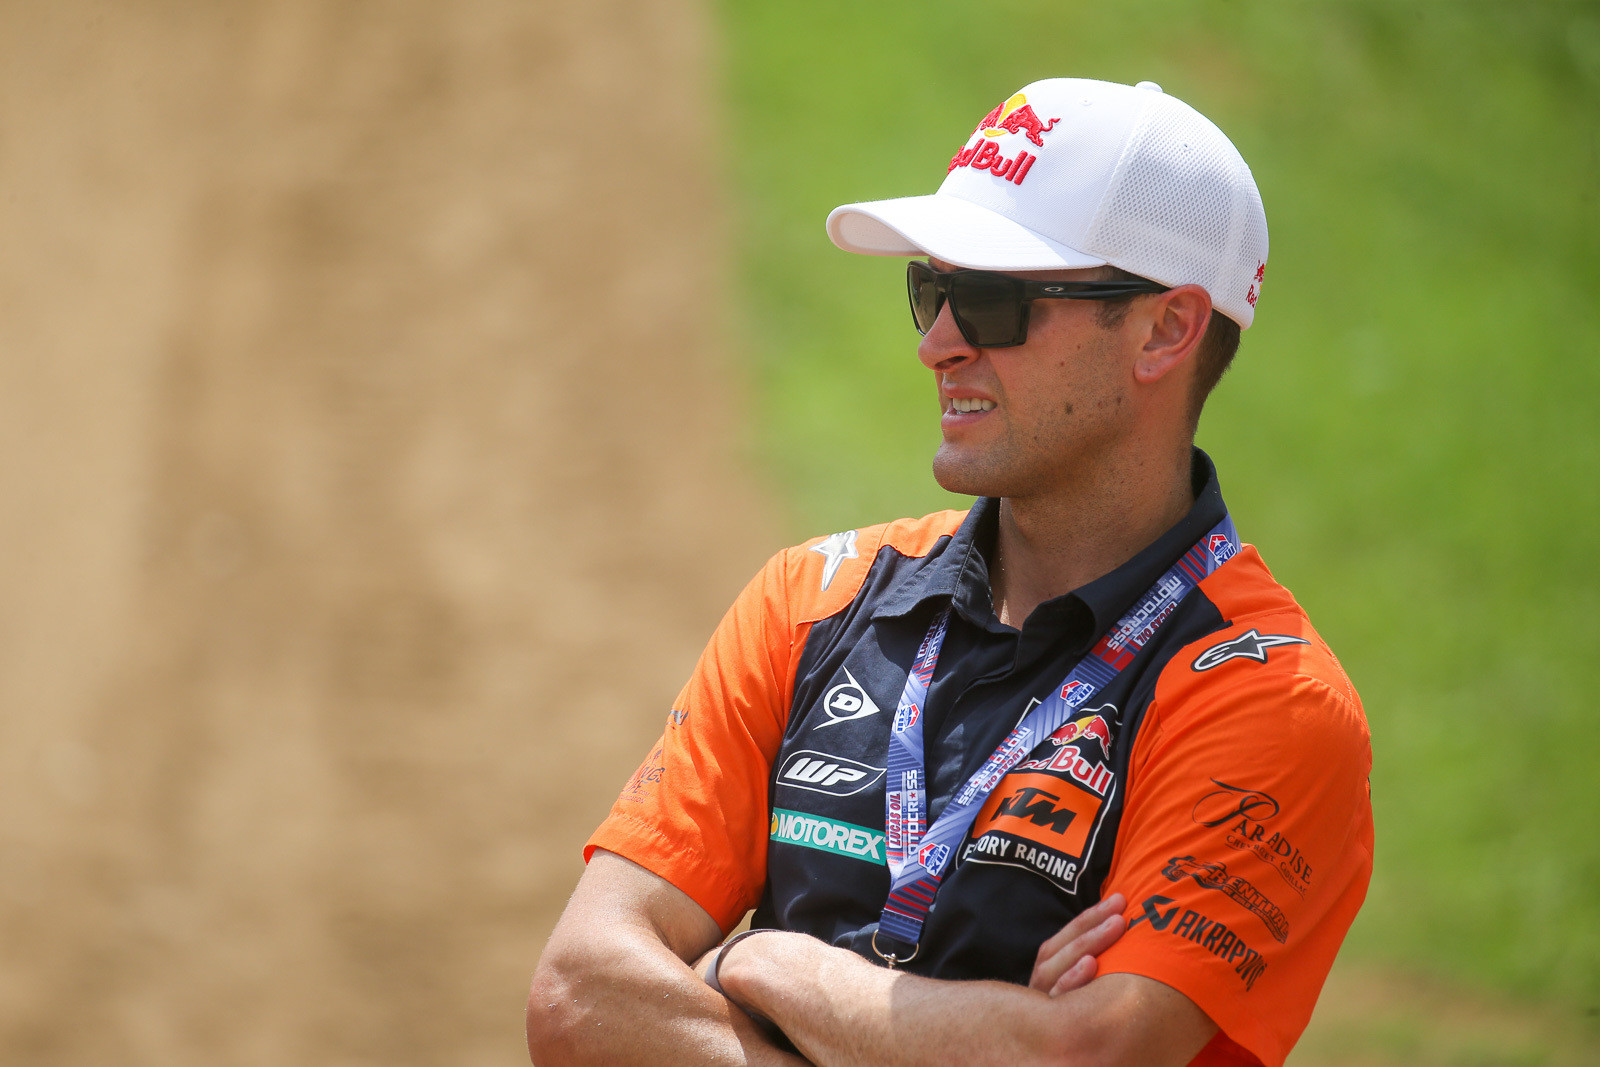 It was good to see Ryan Dungey spectating from the infield this weekend. We joked with the new father about whether he had to come to the races to get some peace and quiet, but he said his new daughter has actually been sleeping quite a bit.